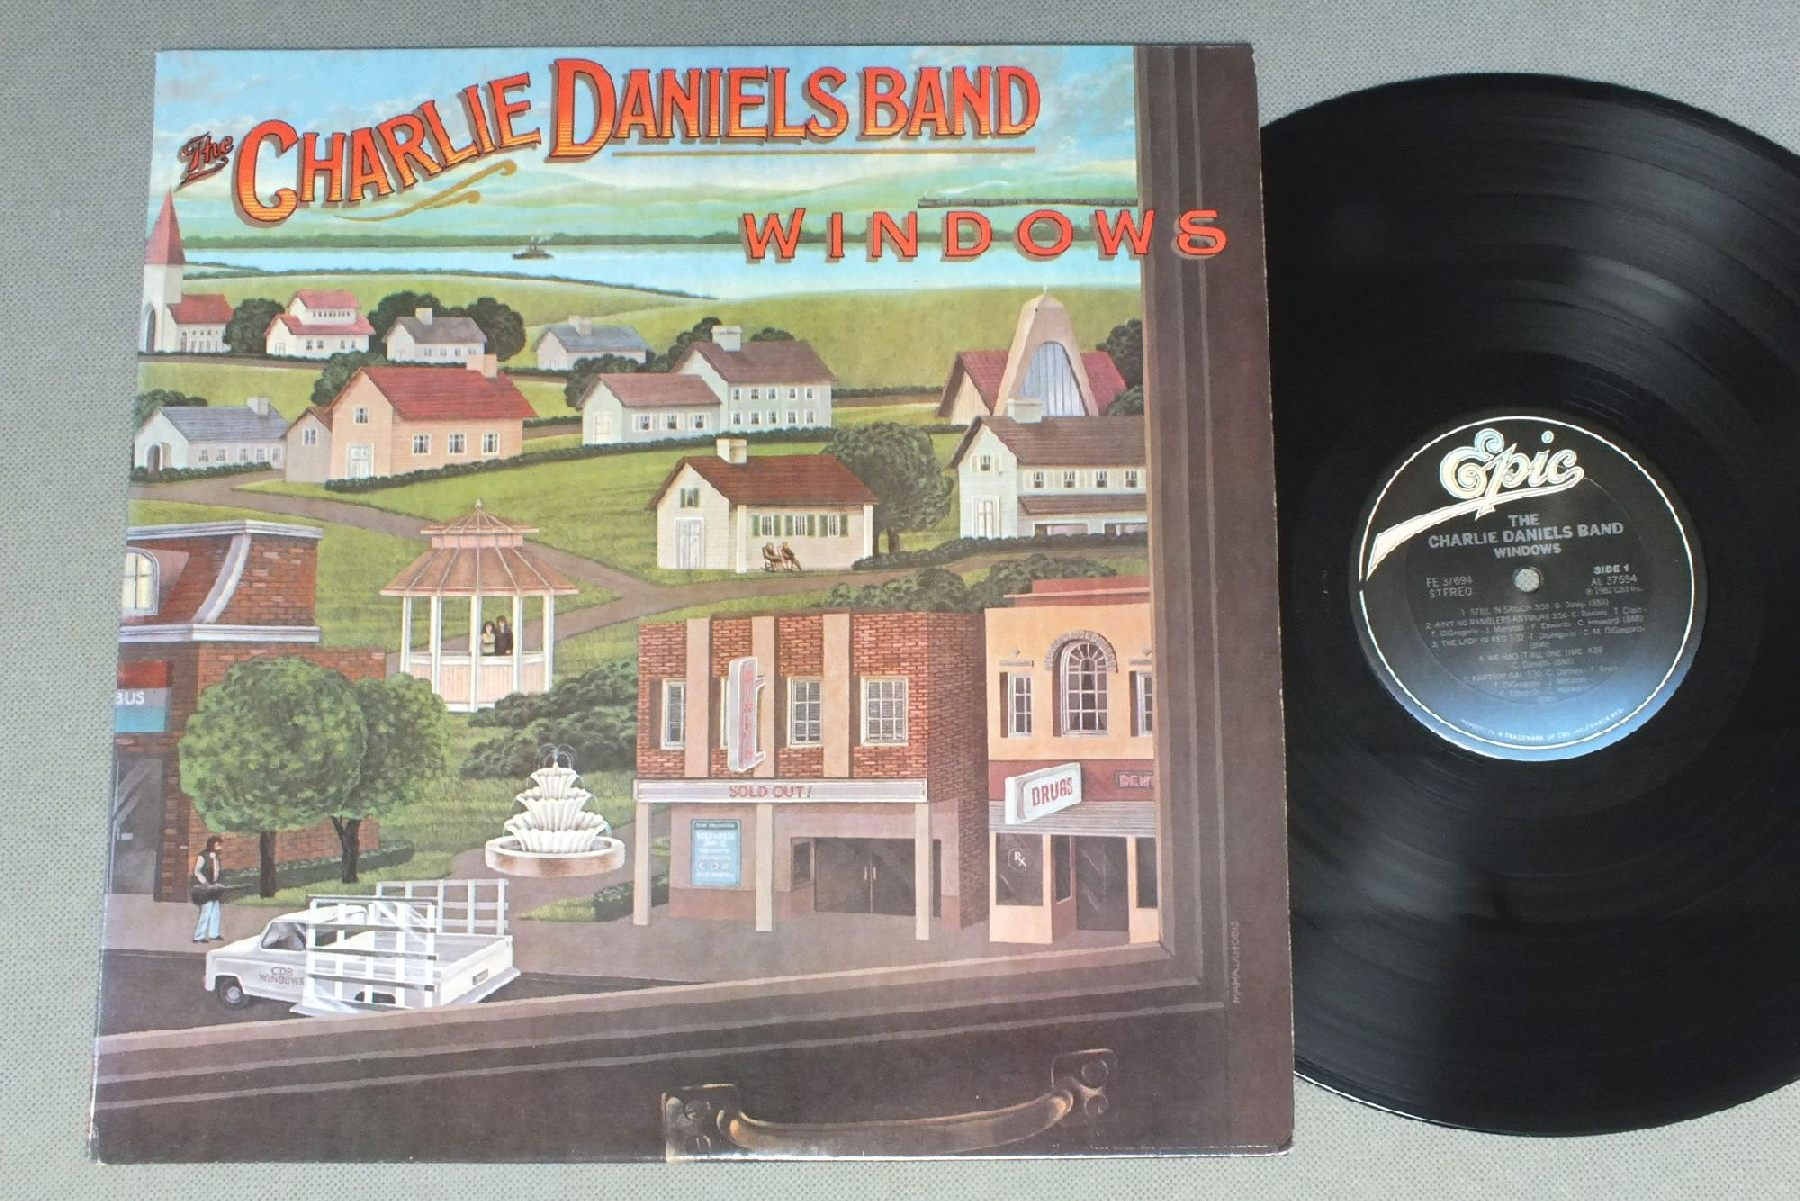 CHARLIE DANIELS BAND - WINDOWS - 33T